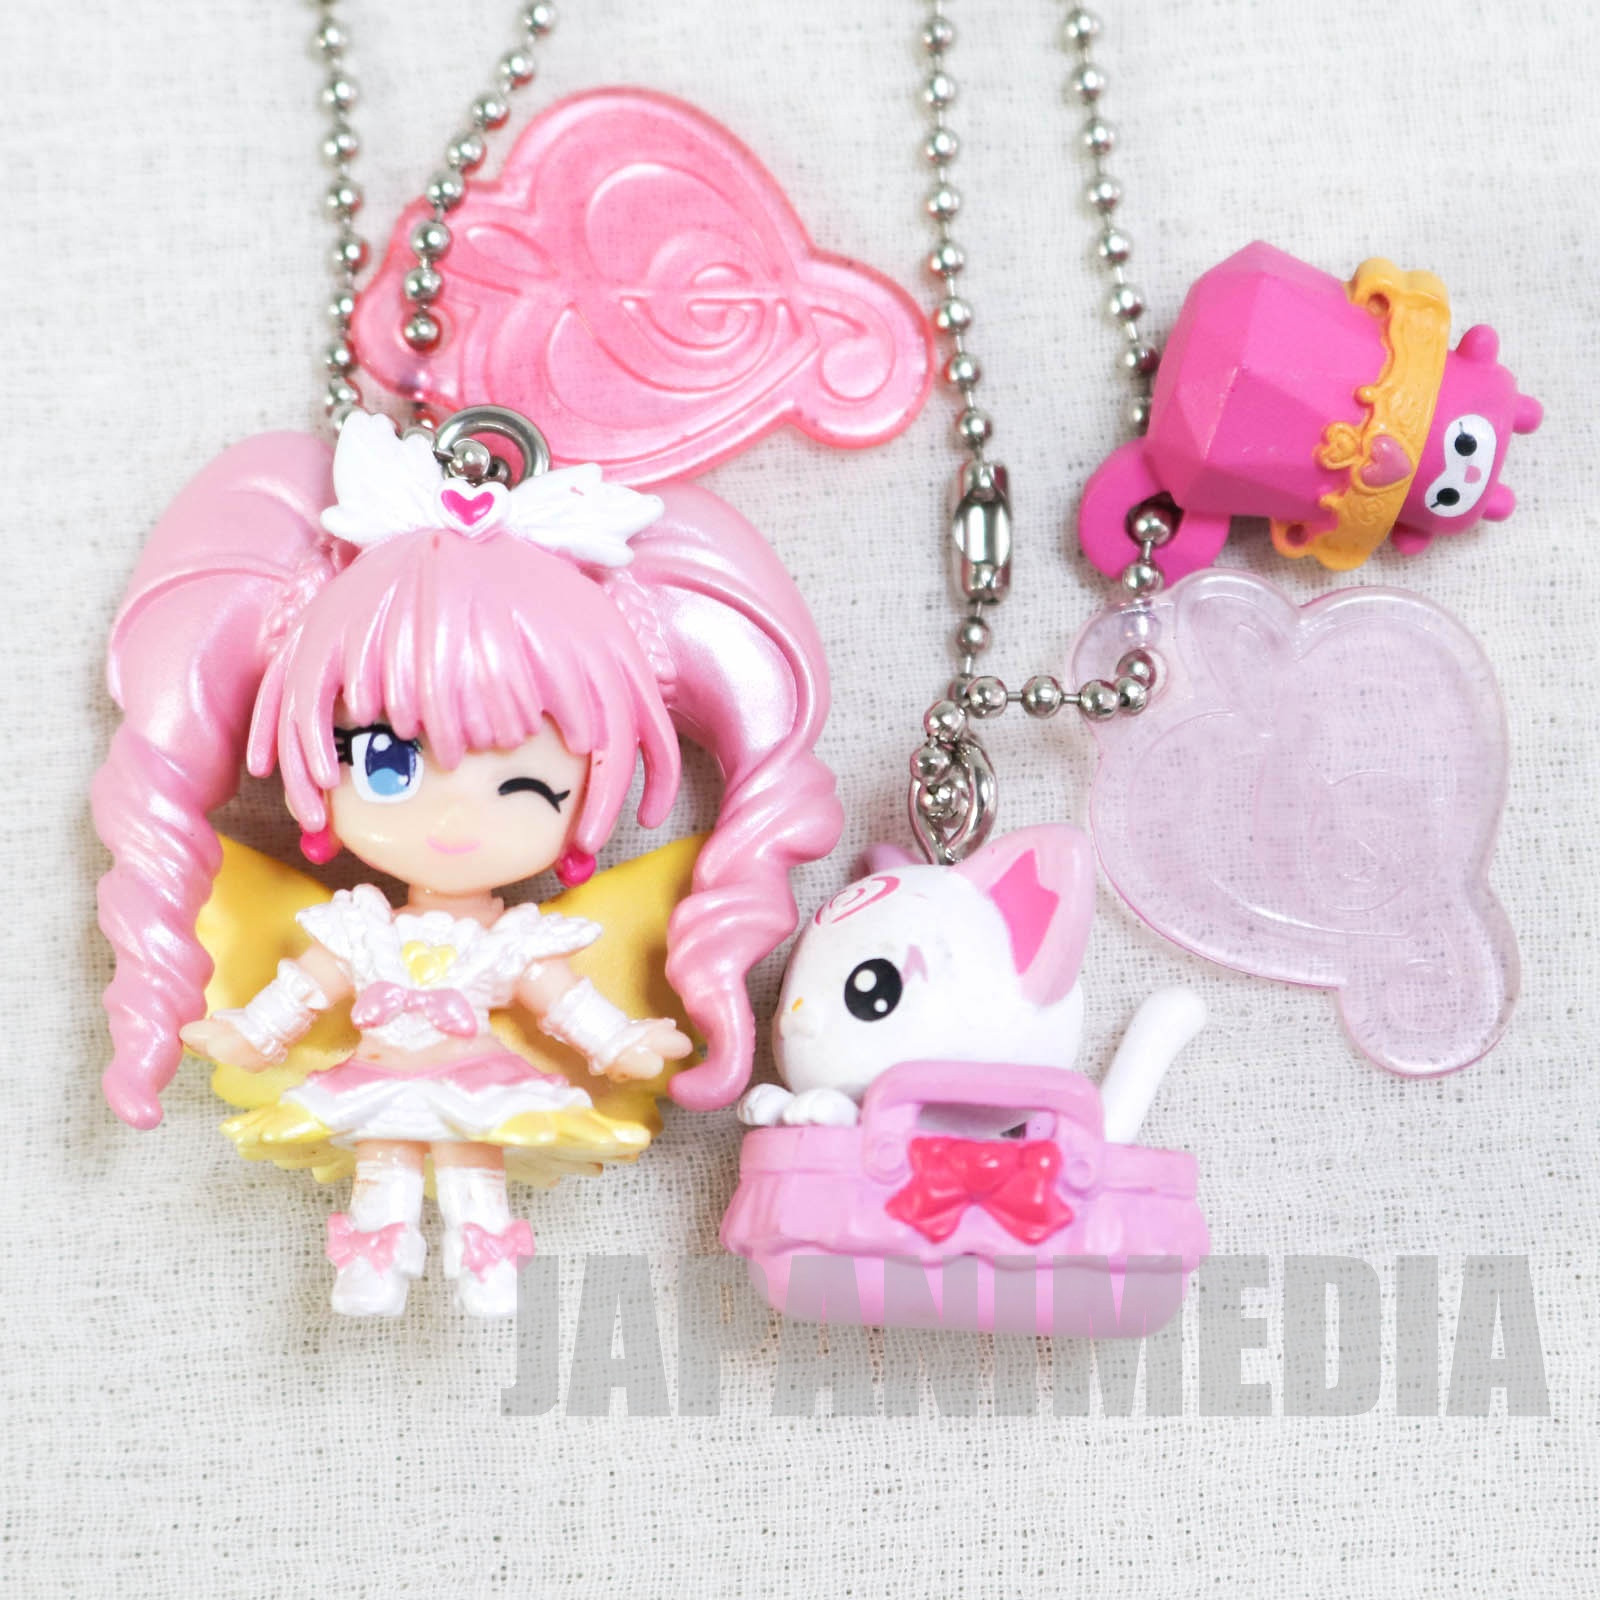 Suite PreCure Crescendo Cure Melody / Hummy & Dory PreCure Goddess Swing Mascot Figure Ball Keychain 2pc set JAPAN ANIME